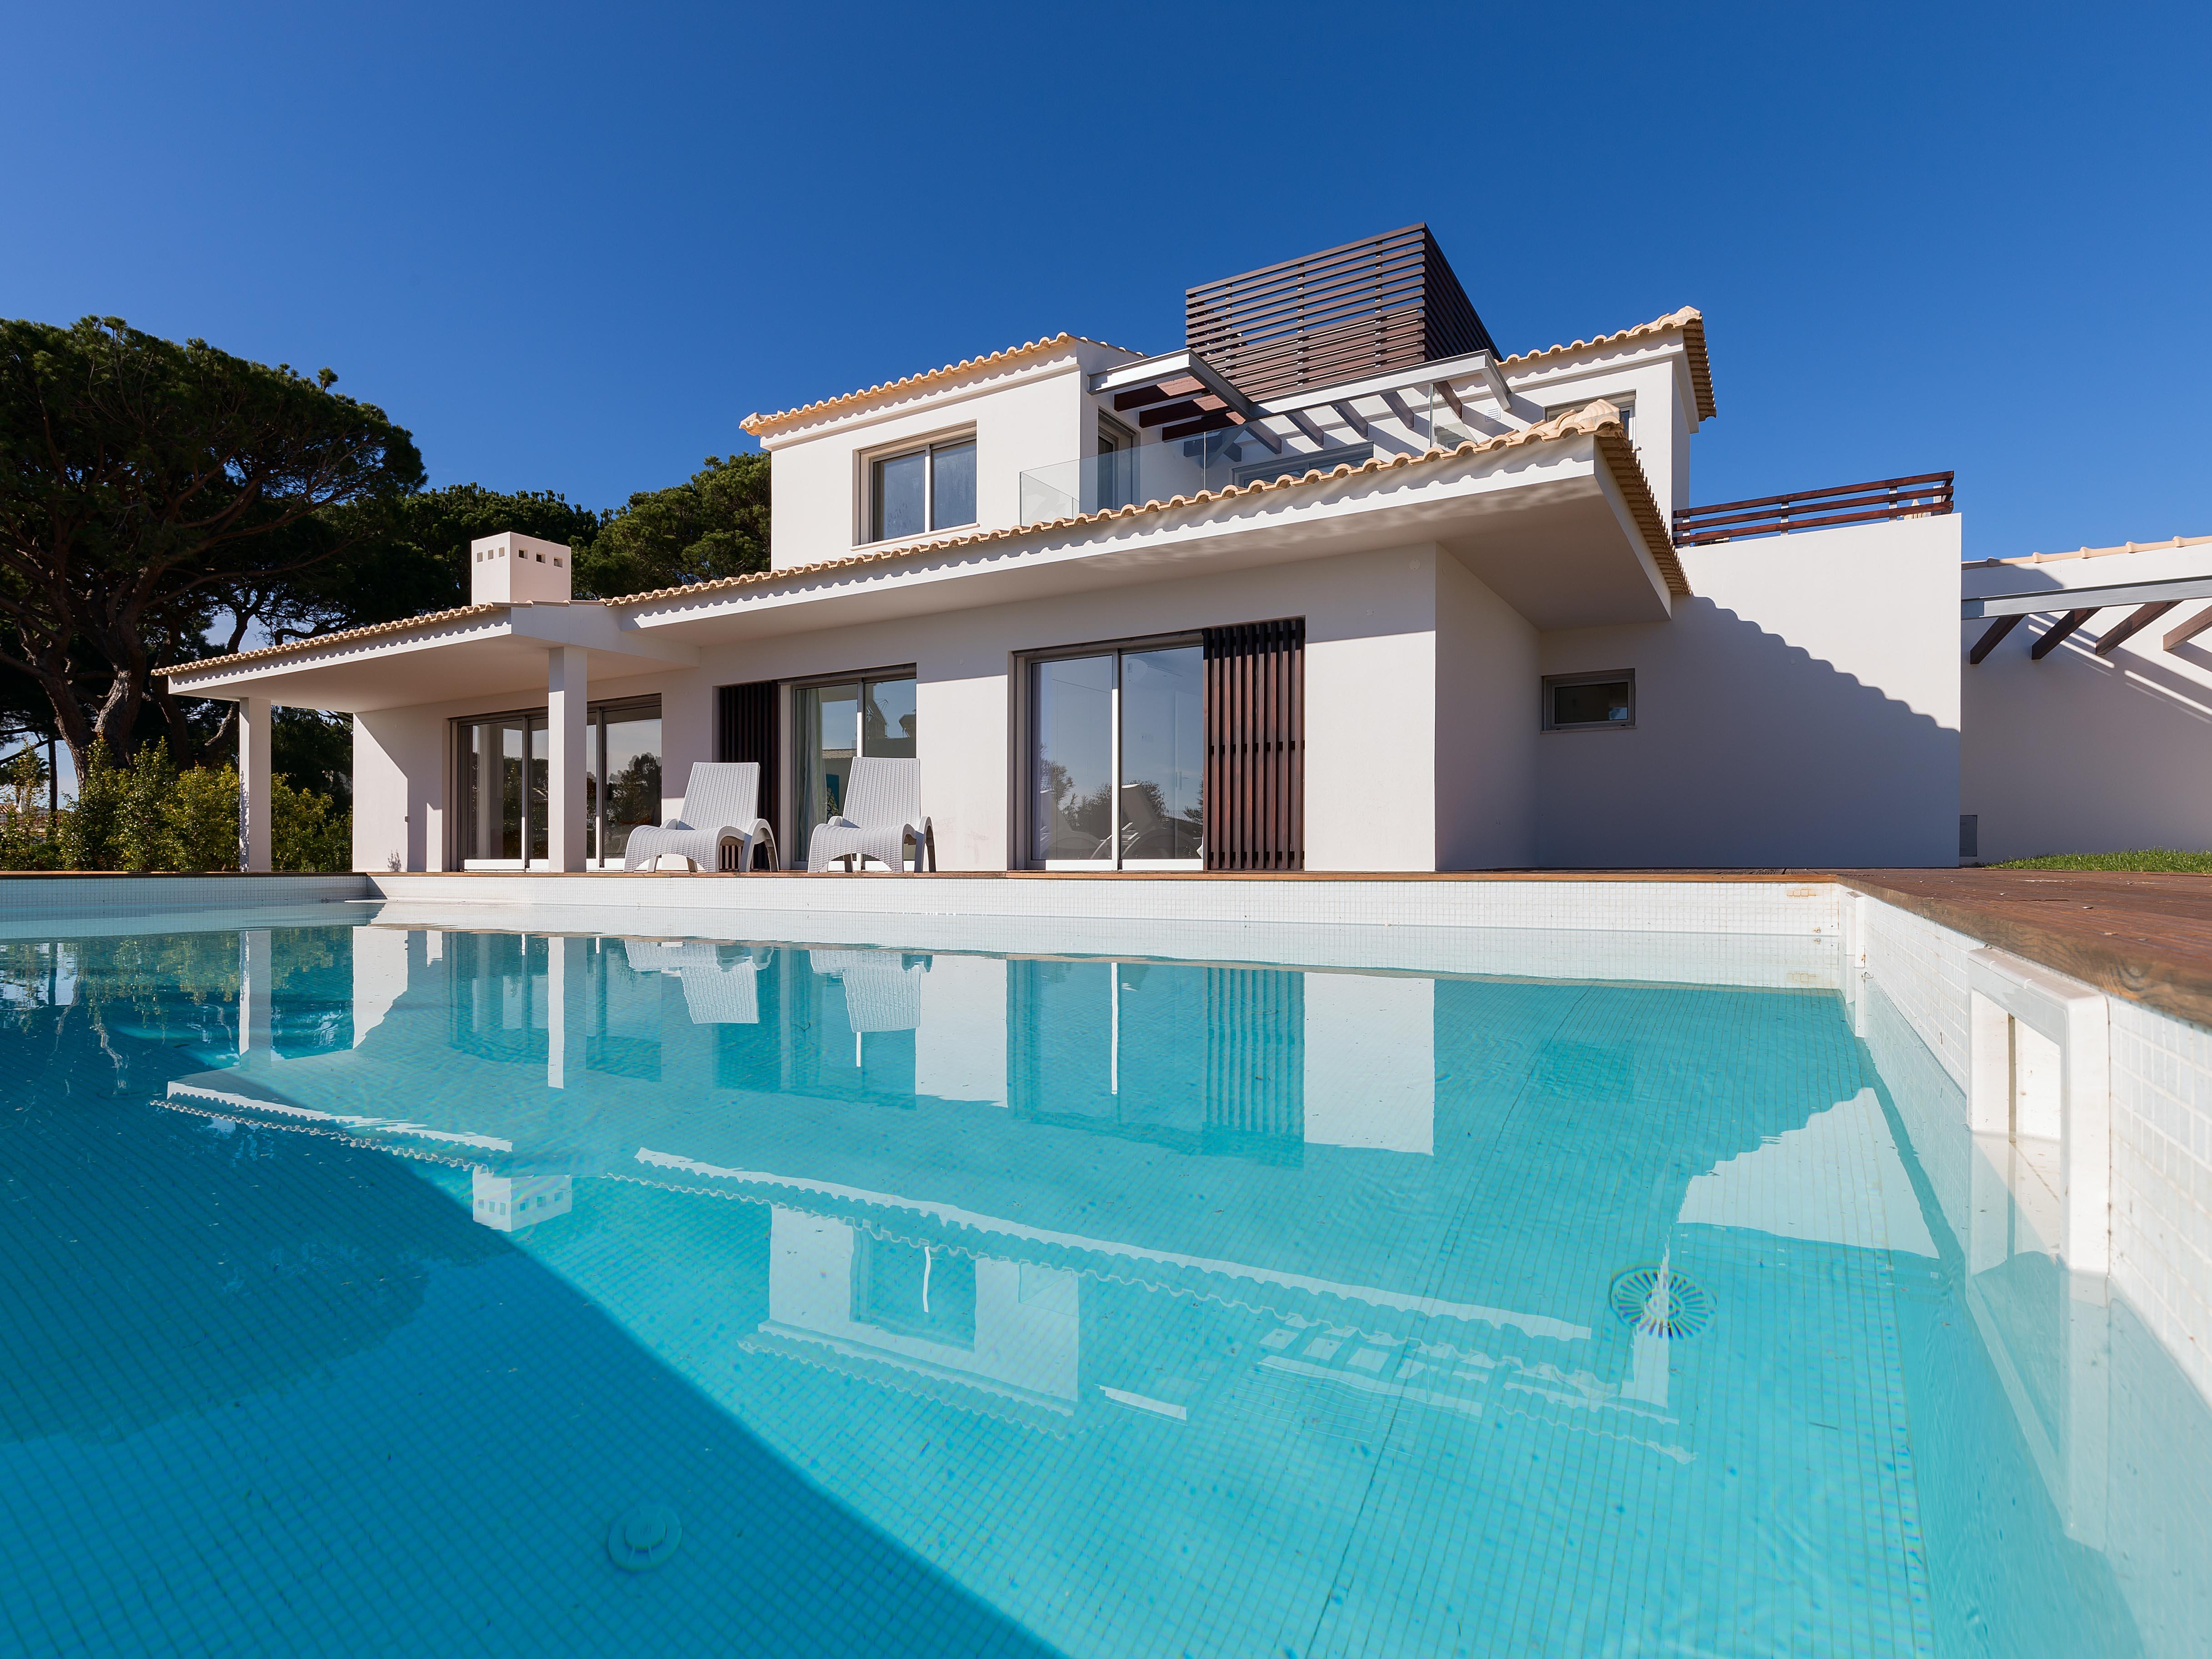 Single Family Home for Sale at Detached house, 4 bedrooms, for Sale Loule, Algarve, - Portugal